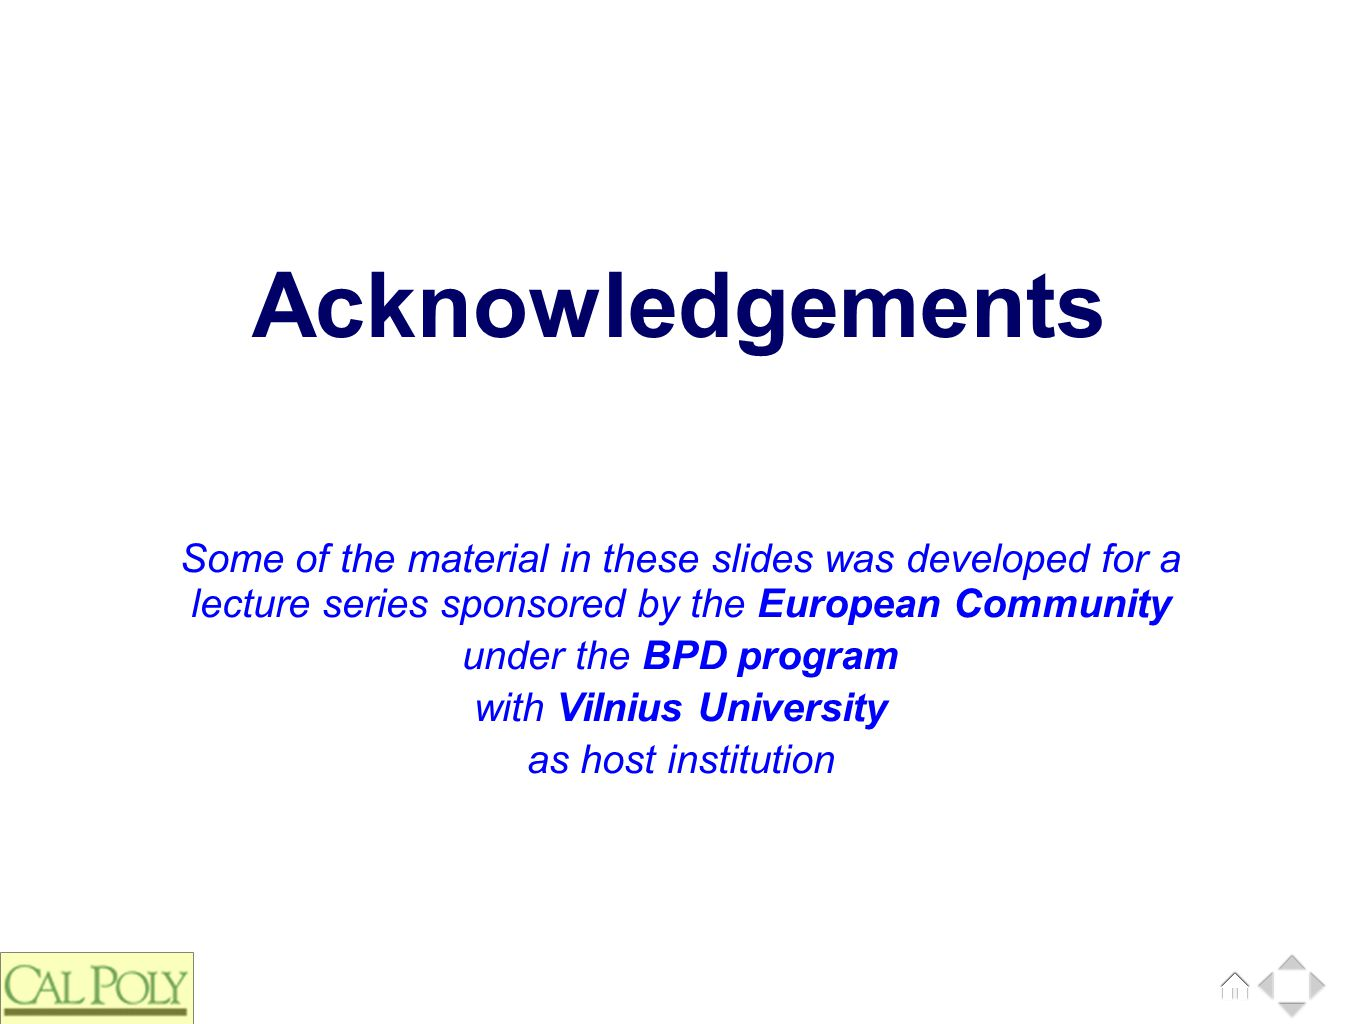 Some of the material in these slides was developed for a lecture series sponsored by the European Community under the BPD program with Vilnius University as host institution Acknowledgements